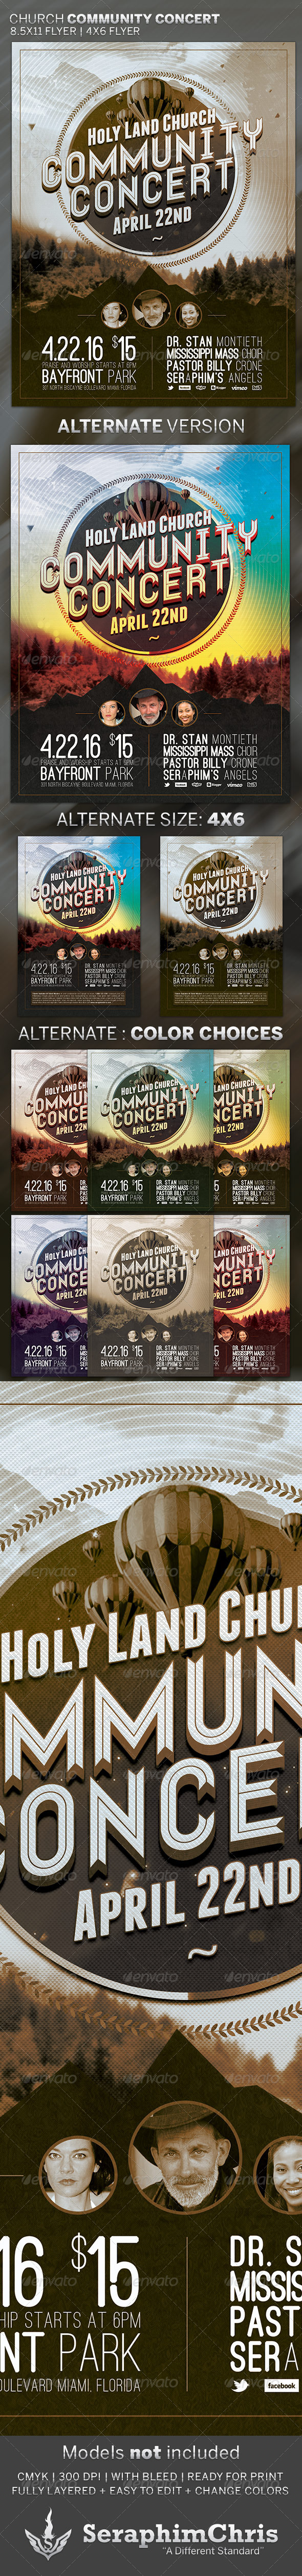 Church Community Concert: Flyer Template - Church Flyers